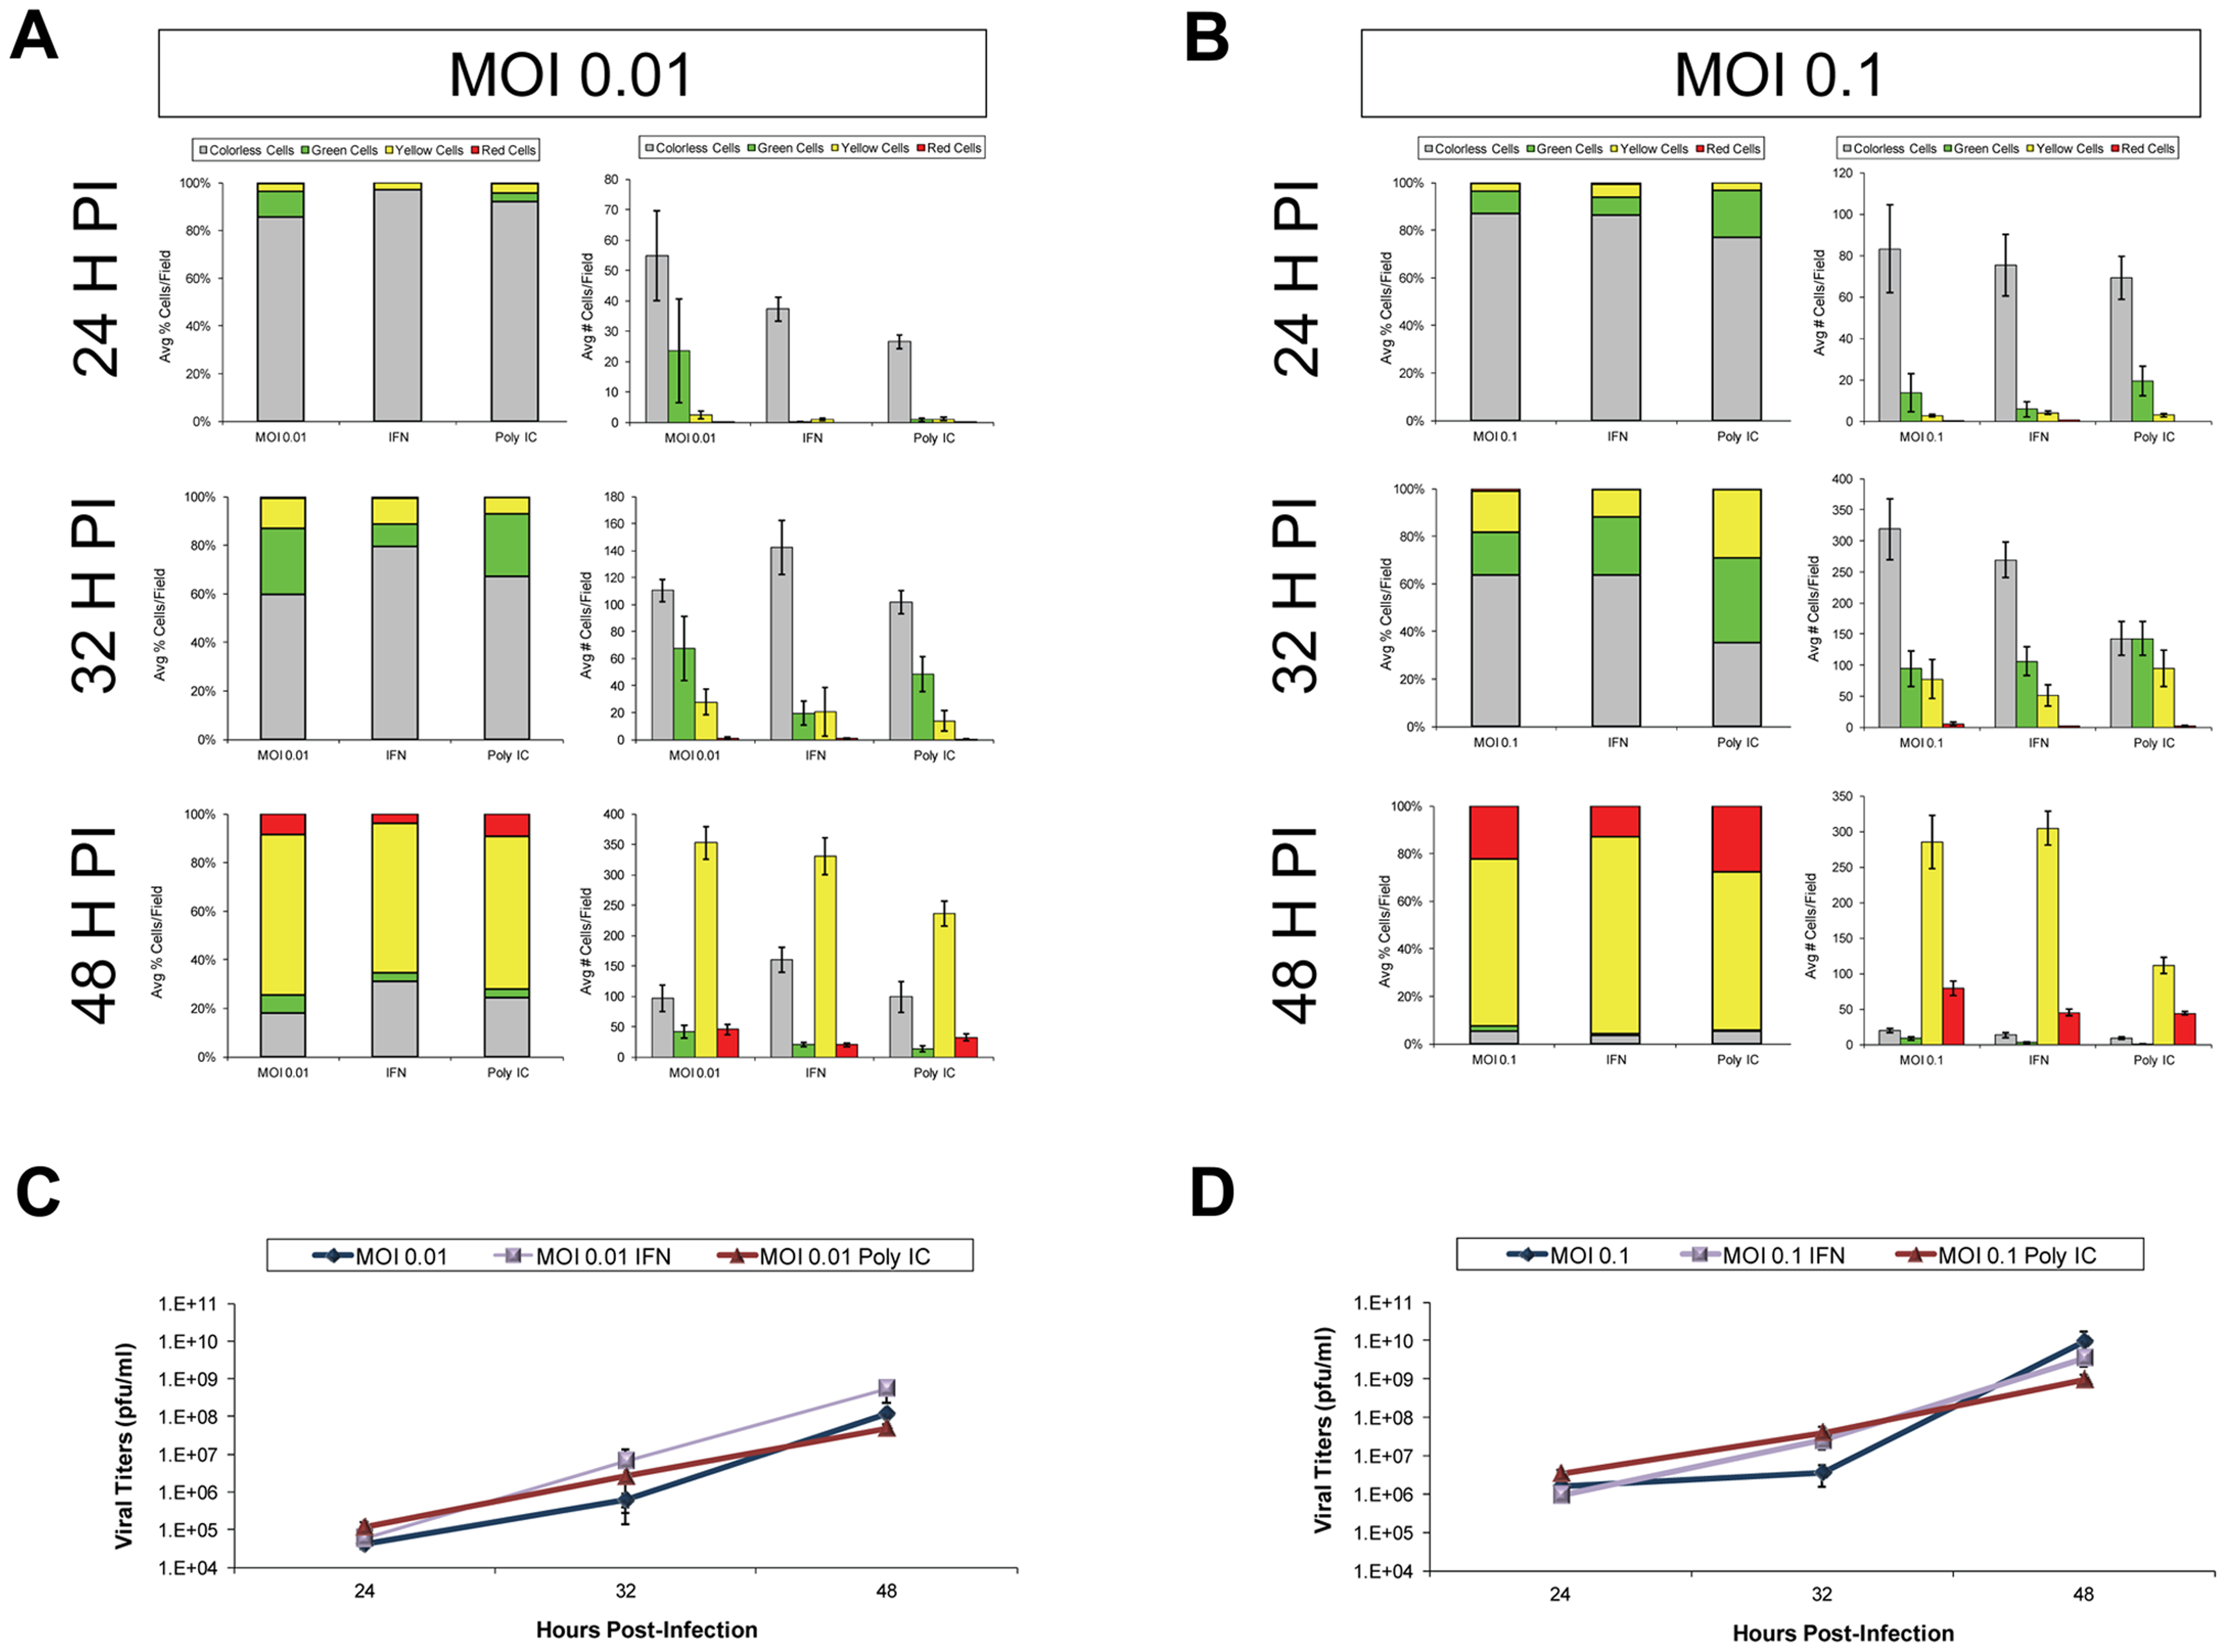 IFN-β or poly IC treatment restricted the progression of Timer-CVB3 infection in HeLa cells at low multiplicities of infection.